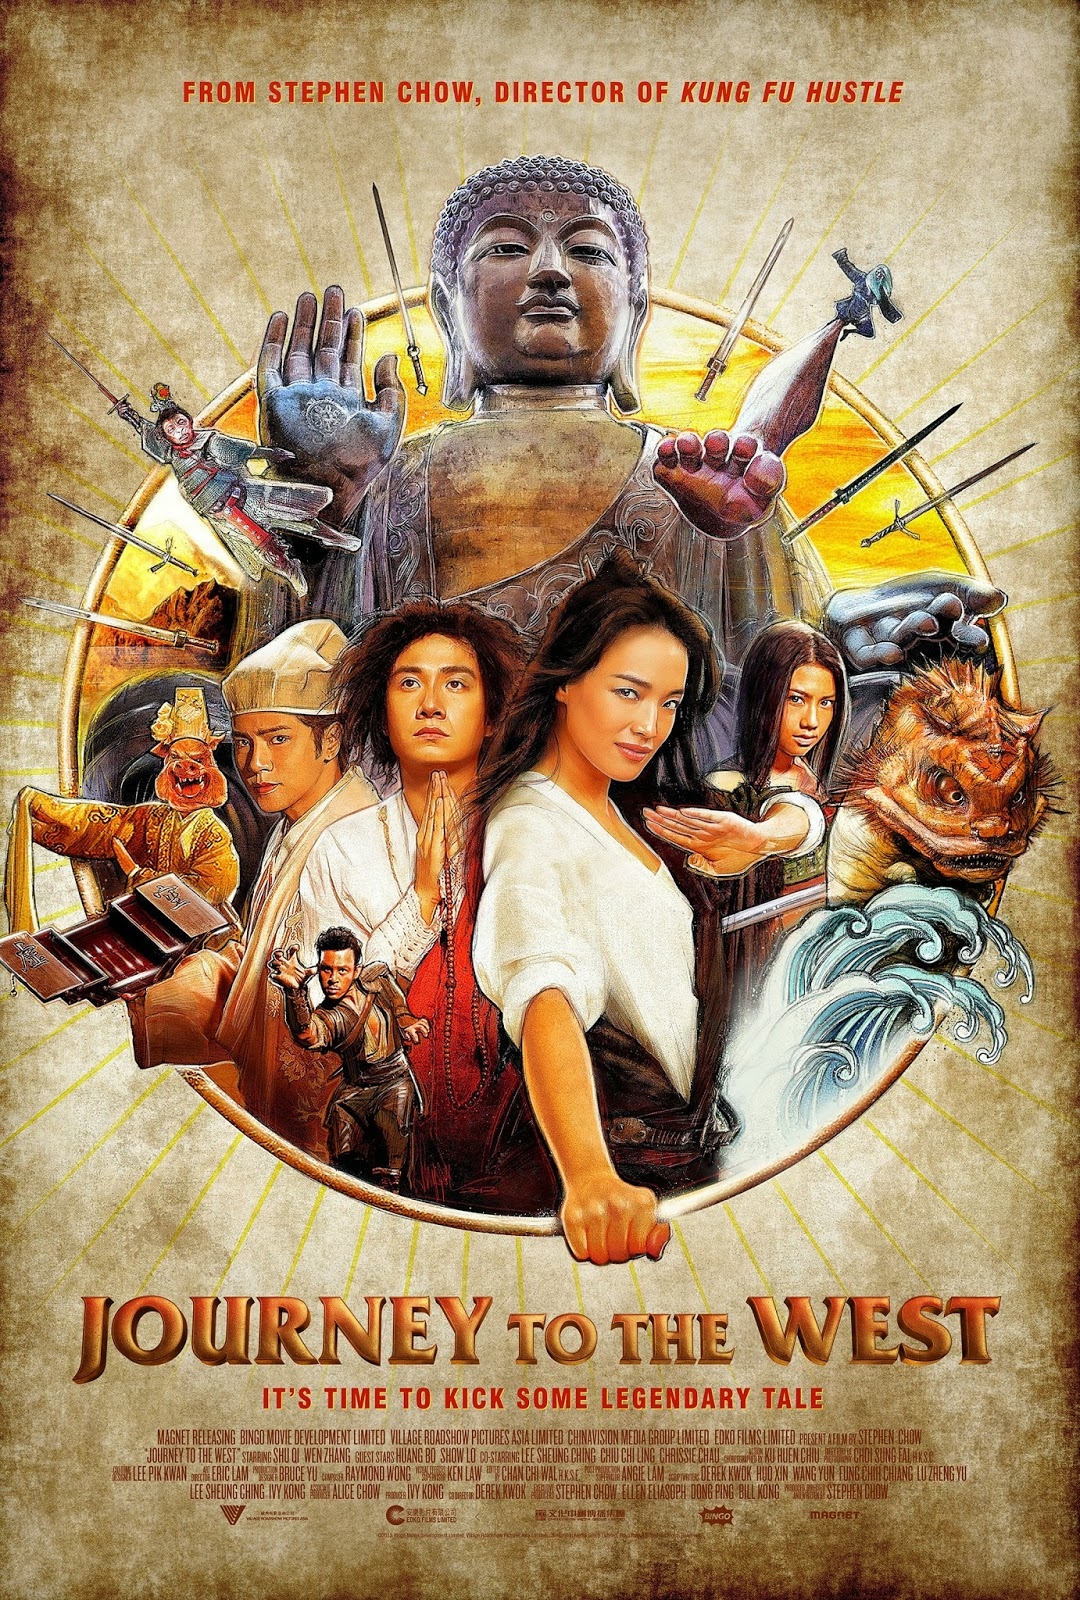 Journey to the West 2014 Full Movie Online Free